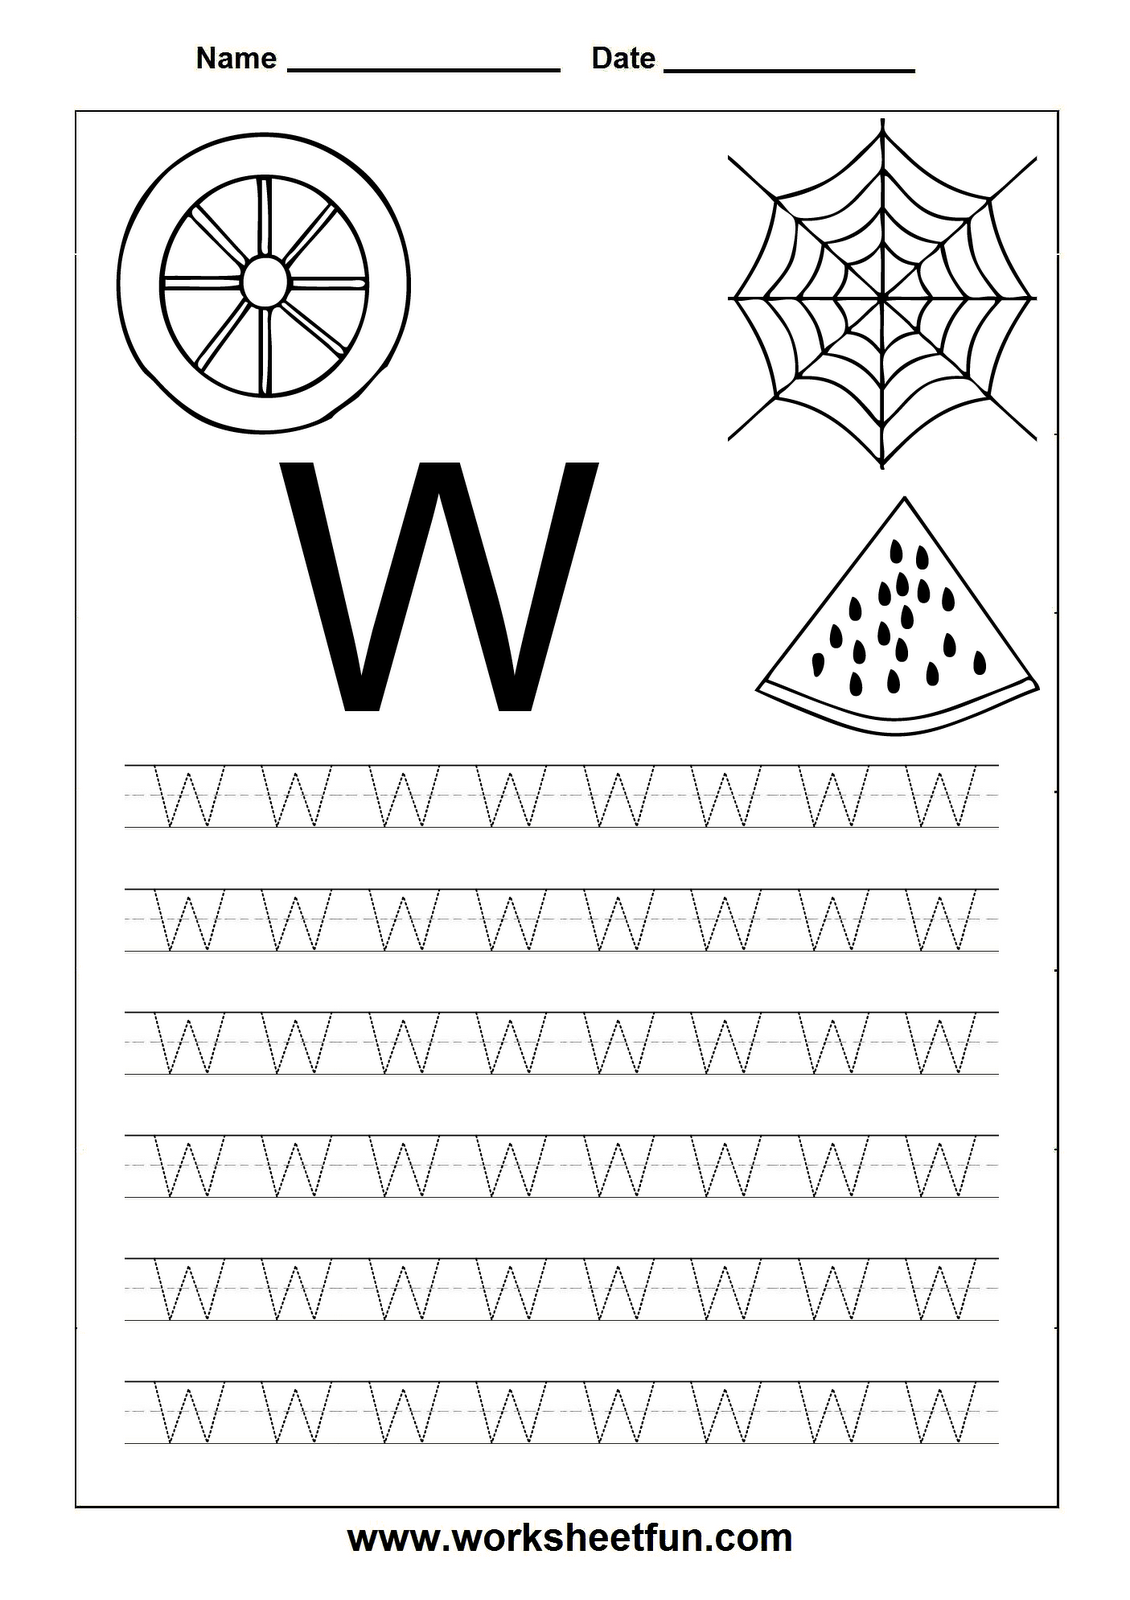 Free printable worksheets letter tracing worksheets for free printable worksheets letter tracing worksheets for kindergarten capital and small letters alphabet spiritdancerdesigns Image collections